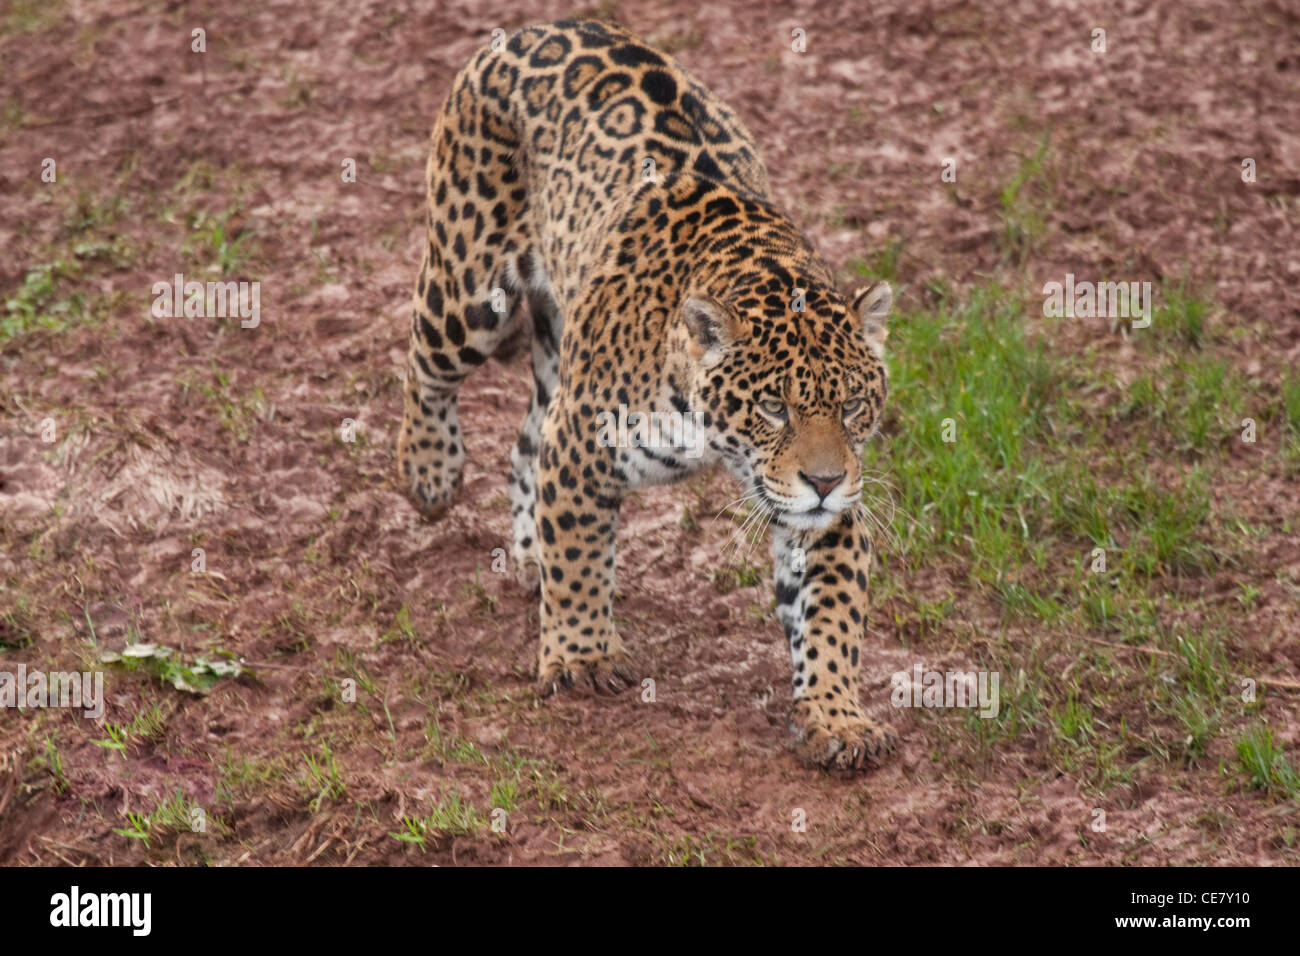 Jaguar Panthera onca on the prowl - Stock Image